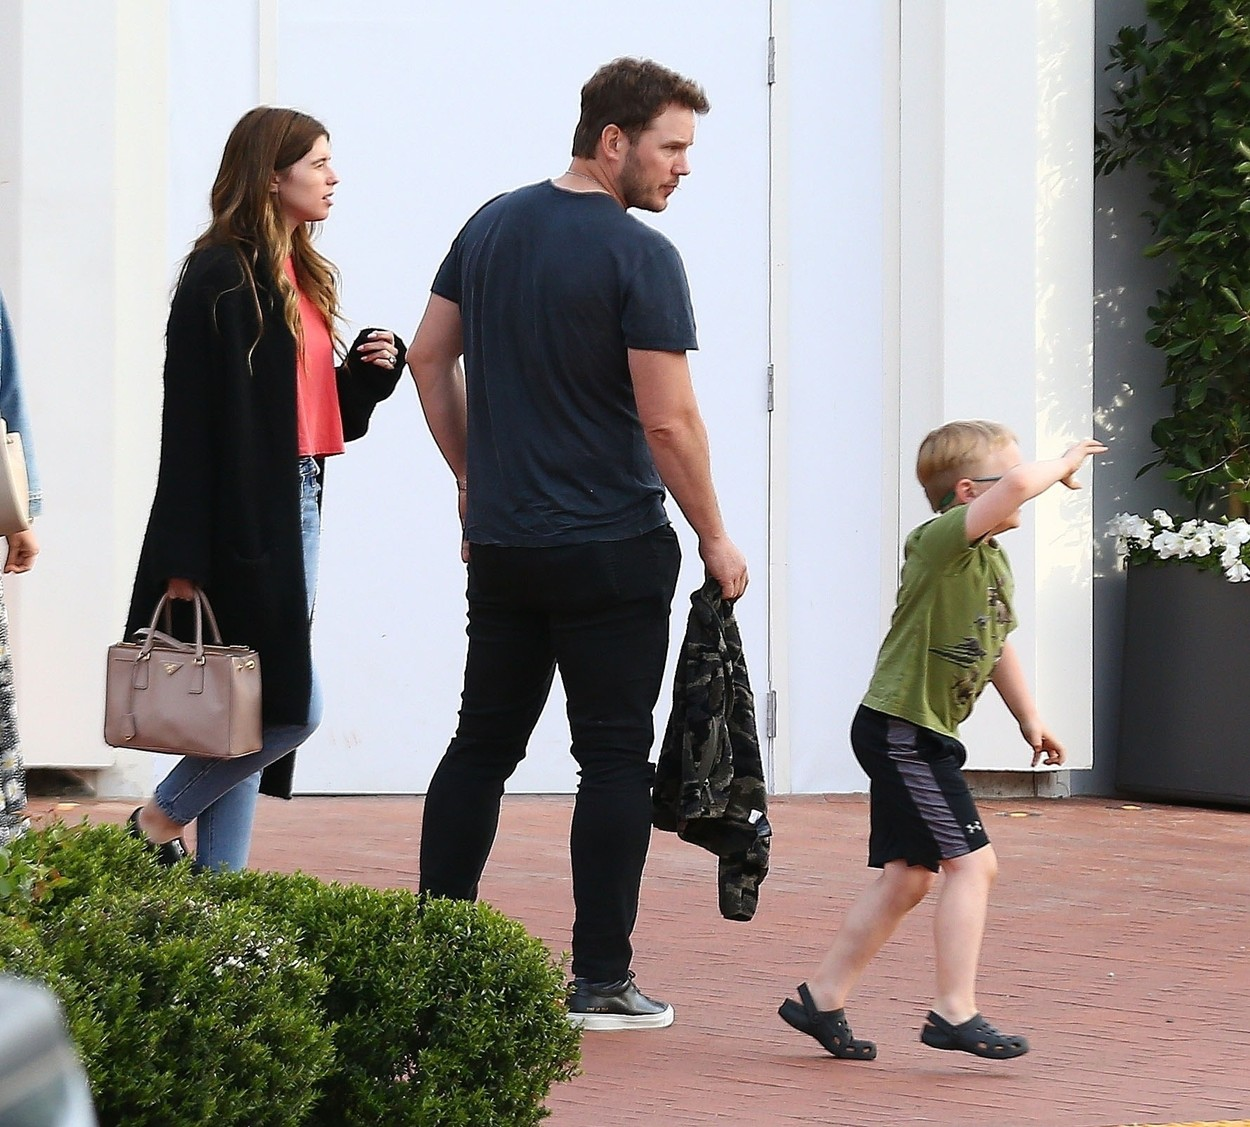 *EXCLUSIVE* Pacific Palisades, CA  - **WEB MUST CALL FOR PRICING** Newlyweds Chris Pratt and Katherine Schwarzenegger step out for an evening in the Pacific Palisades with Chris' son, Jack Pratt, and friends. The family enjoyed a celebratory dinner at Blue Ribbon sushi and even enjoy a movie.  *UK Clients - Pictures Containing Children Please Pixelate Face Prior To Publication*,Image: 446340635, License: Rights-managed, Restrictions: , Model Release: no, Credit line: Dsanchez/CPR / BACKGRID / Backgrid USA / Profimedia